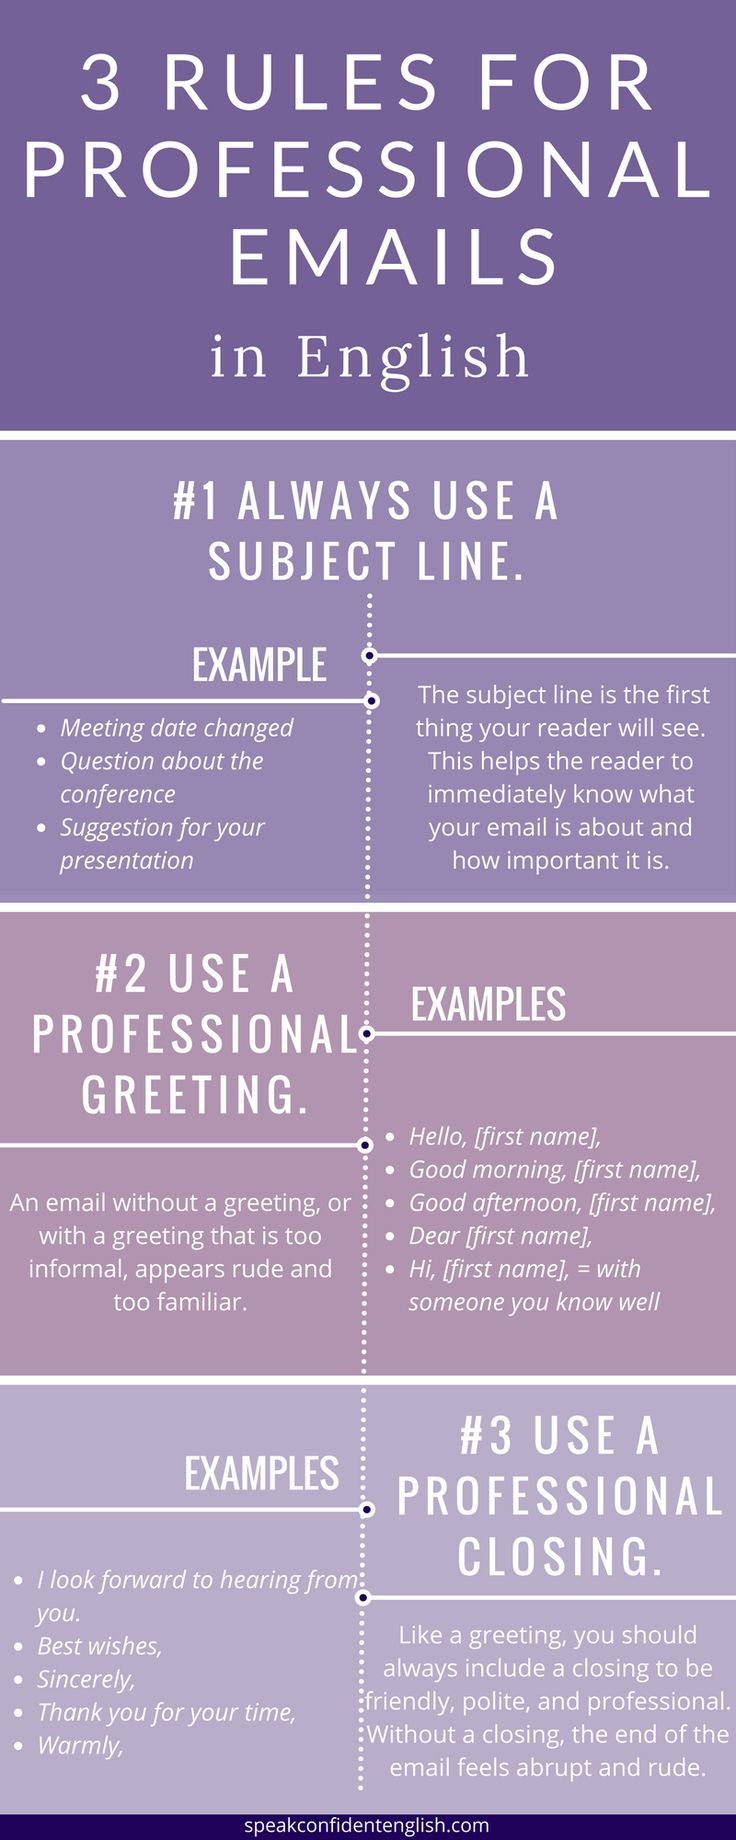 Do you often write emails in English for work? Don't miss these important rules for professional English! Learn more at: http://www.speakconfidentenglish.com/7-rules-for-emails/?utm_campaign=coschedule&utm_source=pinterest&utm_medium=Speak%20Confident%20English%20%7C%20English%20Fluency%20Trainer&utm_content=7%20Rules%20for%20Professional%20Emails%20in%20English